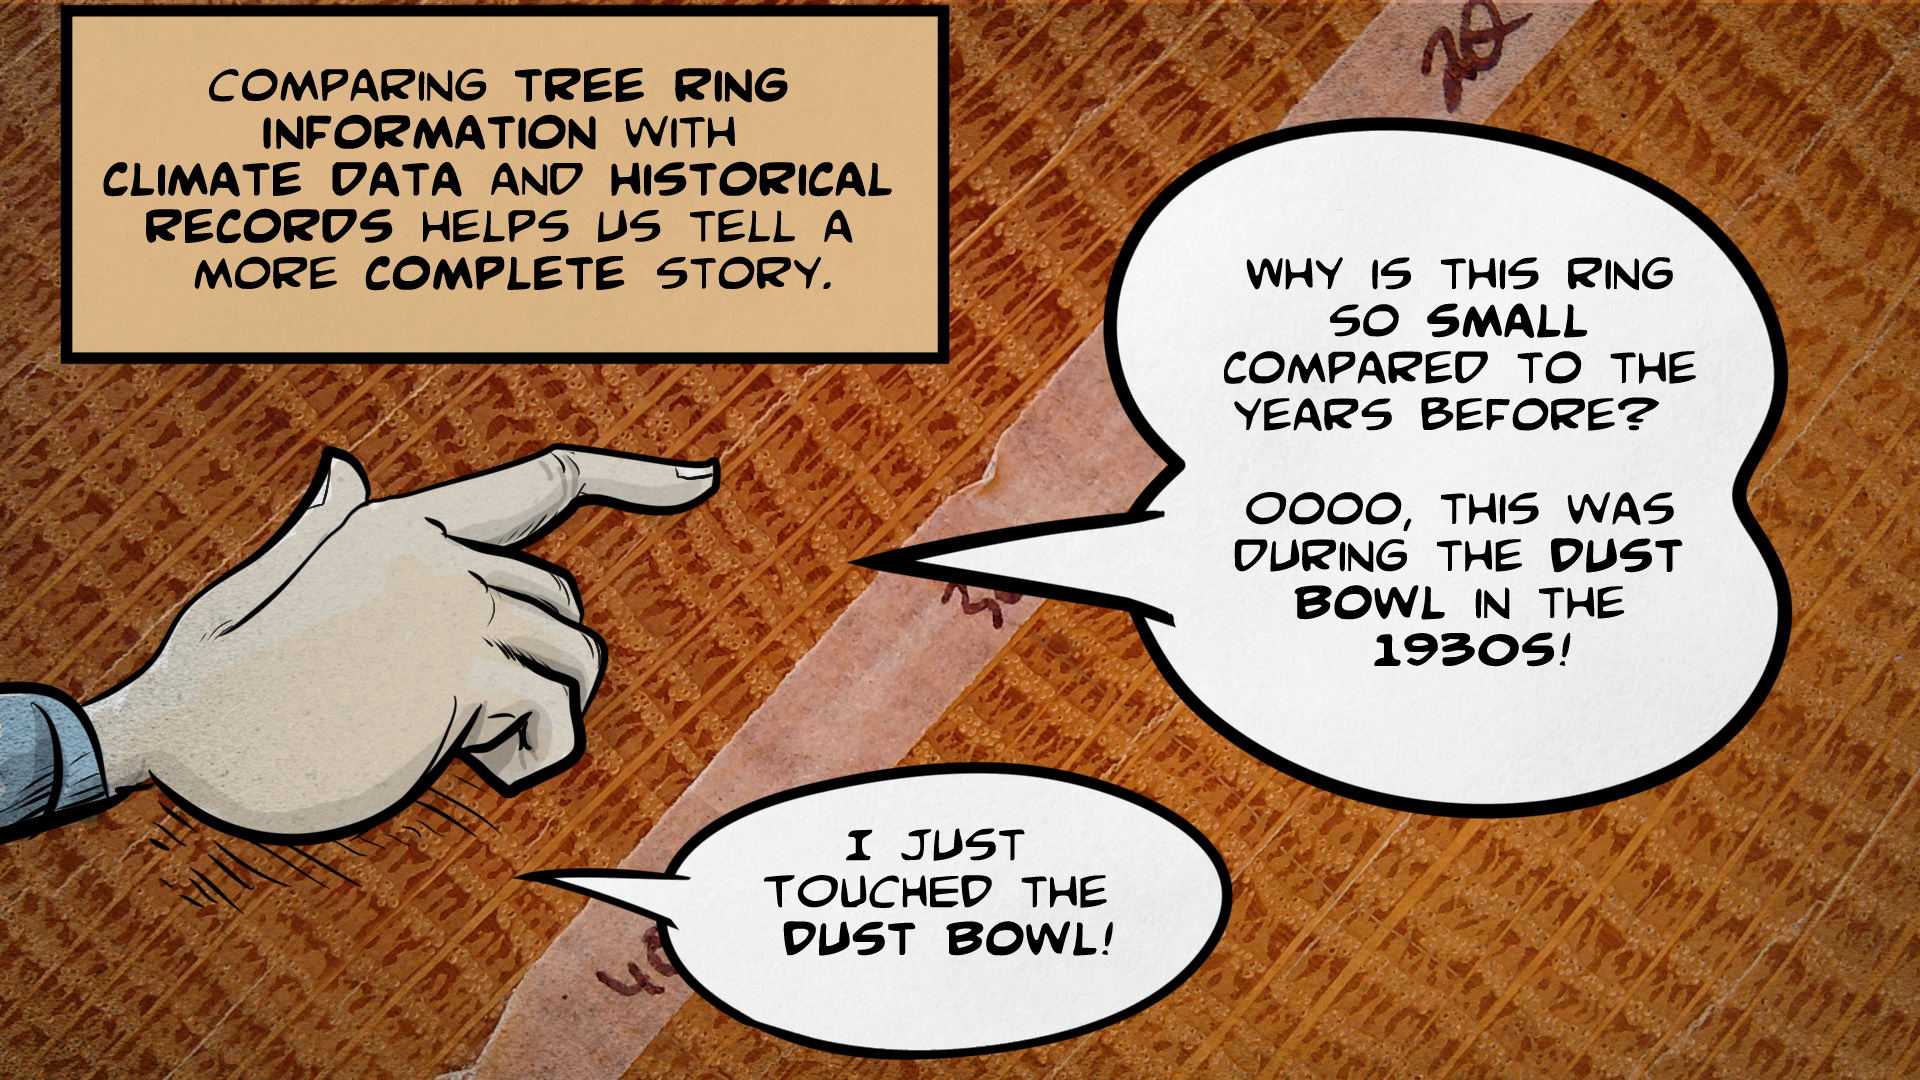 "Carmen, the narrator, says, ""Comparing tree ring information with climate data and historical records helps us tell a more complete story."" Carmen's hand points to a tree ring. She says, ""Why is this ring so small compared to the years before? Oooo, this was during the Dust Bowl in the 1930s! I just touched the Dust Bowl!"""